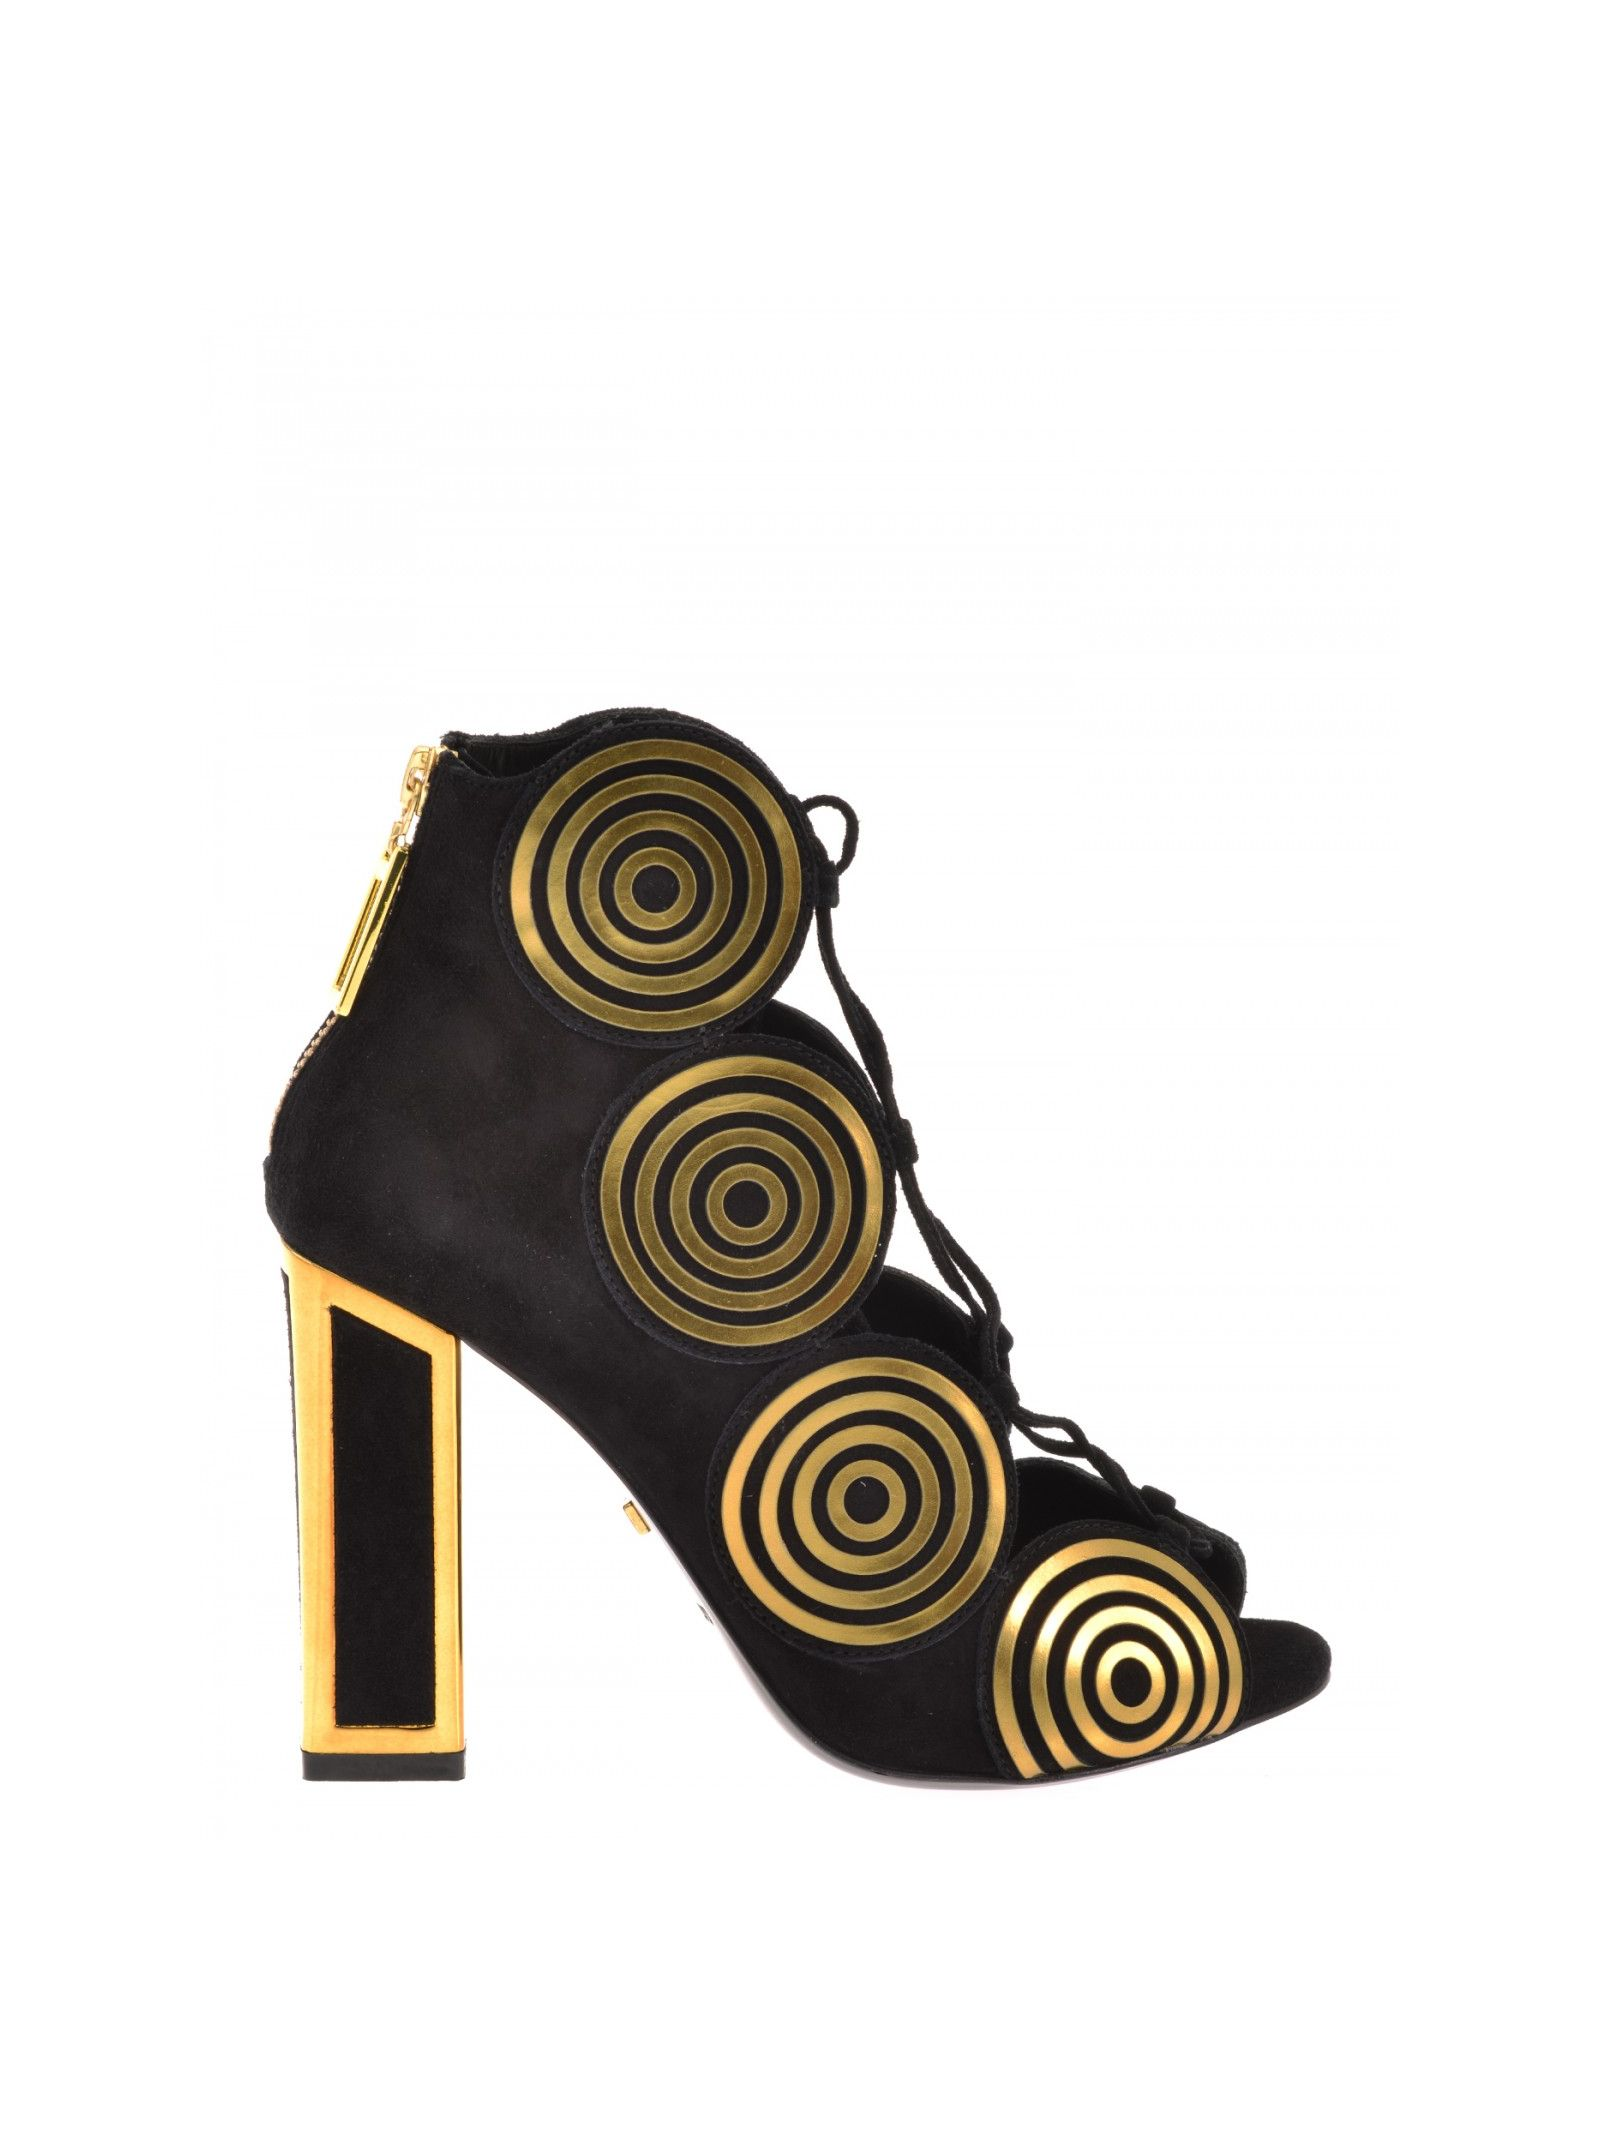 Suede shoes Hill: 10 cm Sole: Leather Details: Suede pumps, Open toe, Laser-cut gold-tone leather, Spiral trim, Crossover closure at upper, Zip at back, Block heels with gold-tone metal detailing, Leather lining